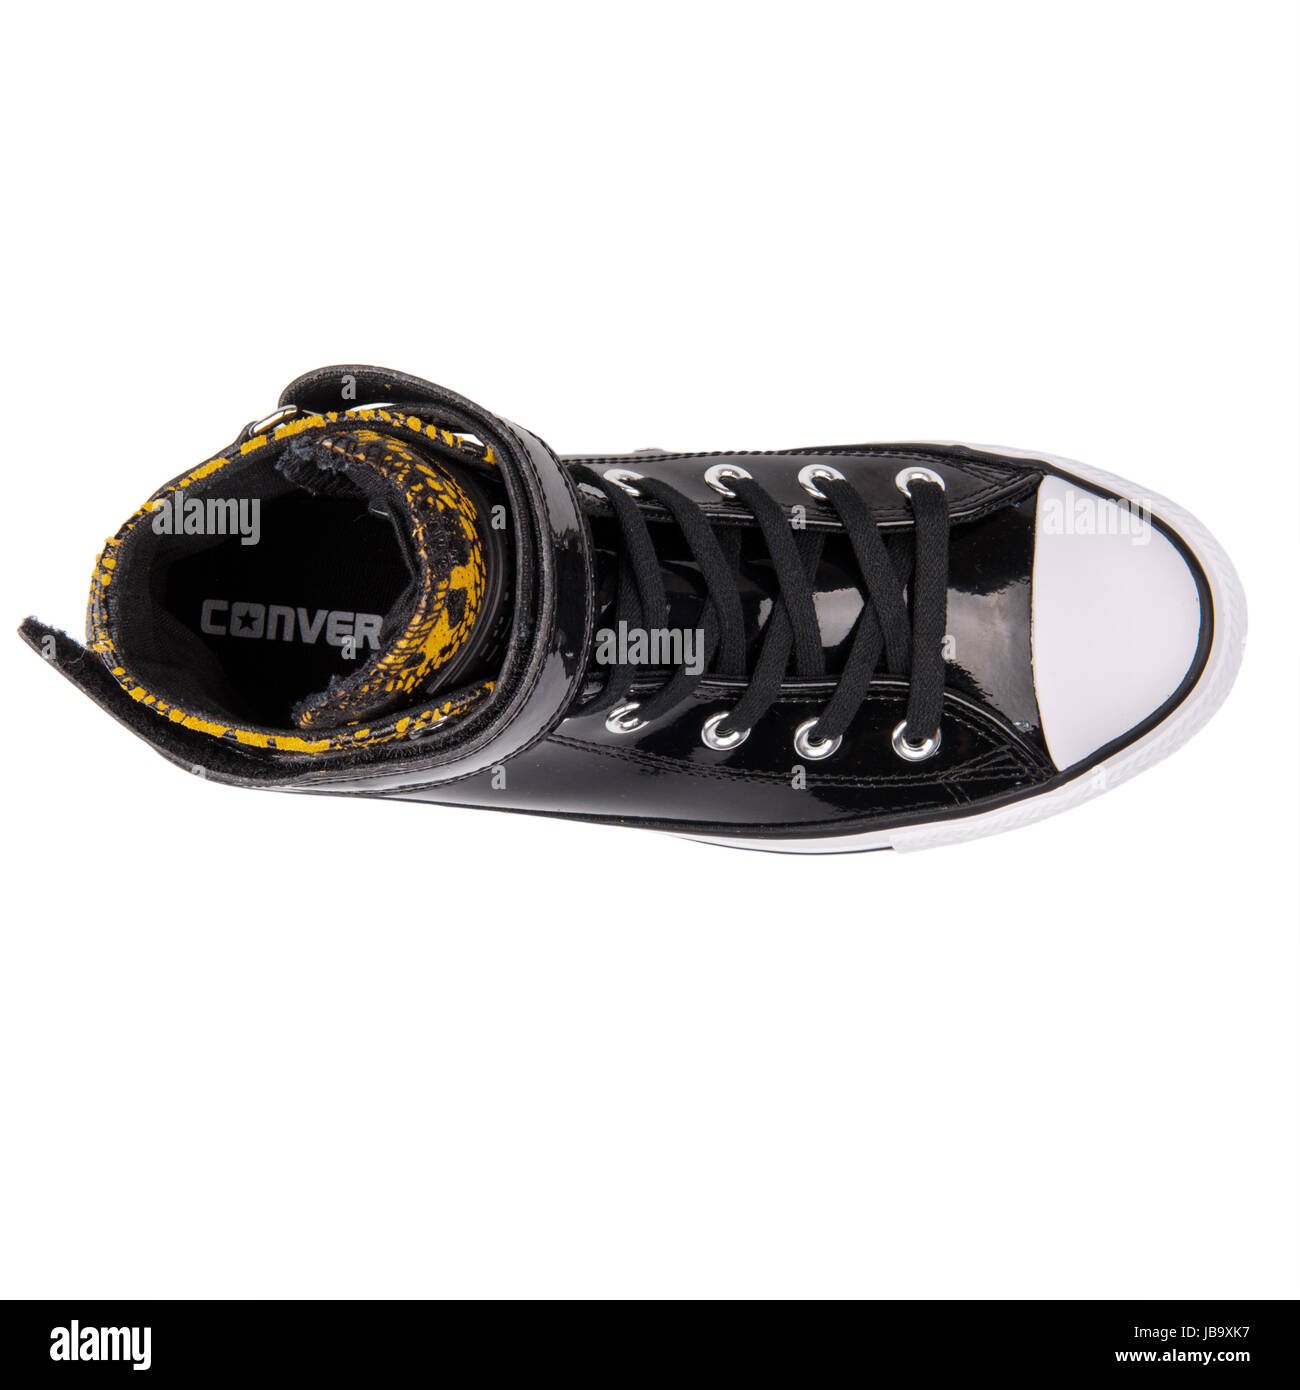 Converse Chuck Taylor All Star Brea Hi Antiqued Black Women's Shoes - 549579C - Stock Image